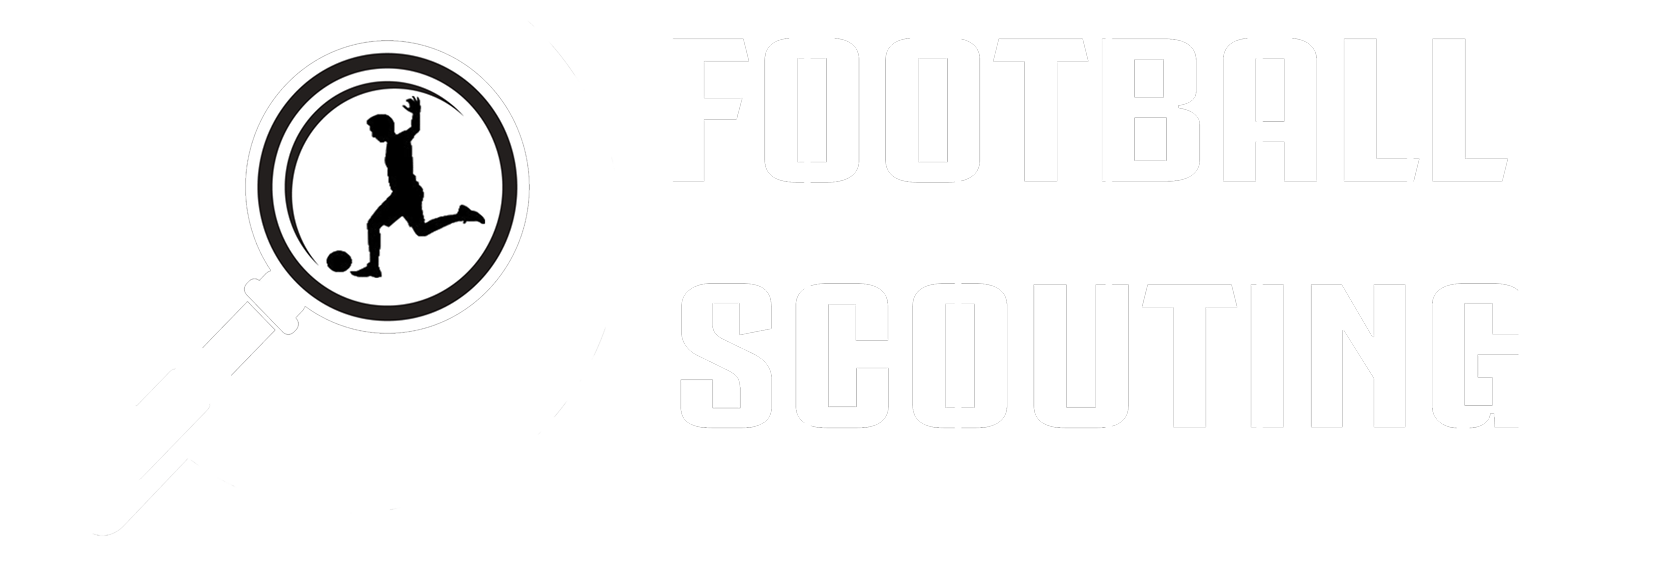 Football Scouting